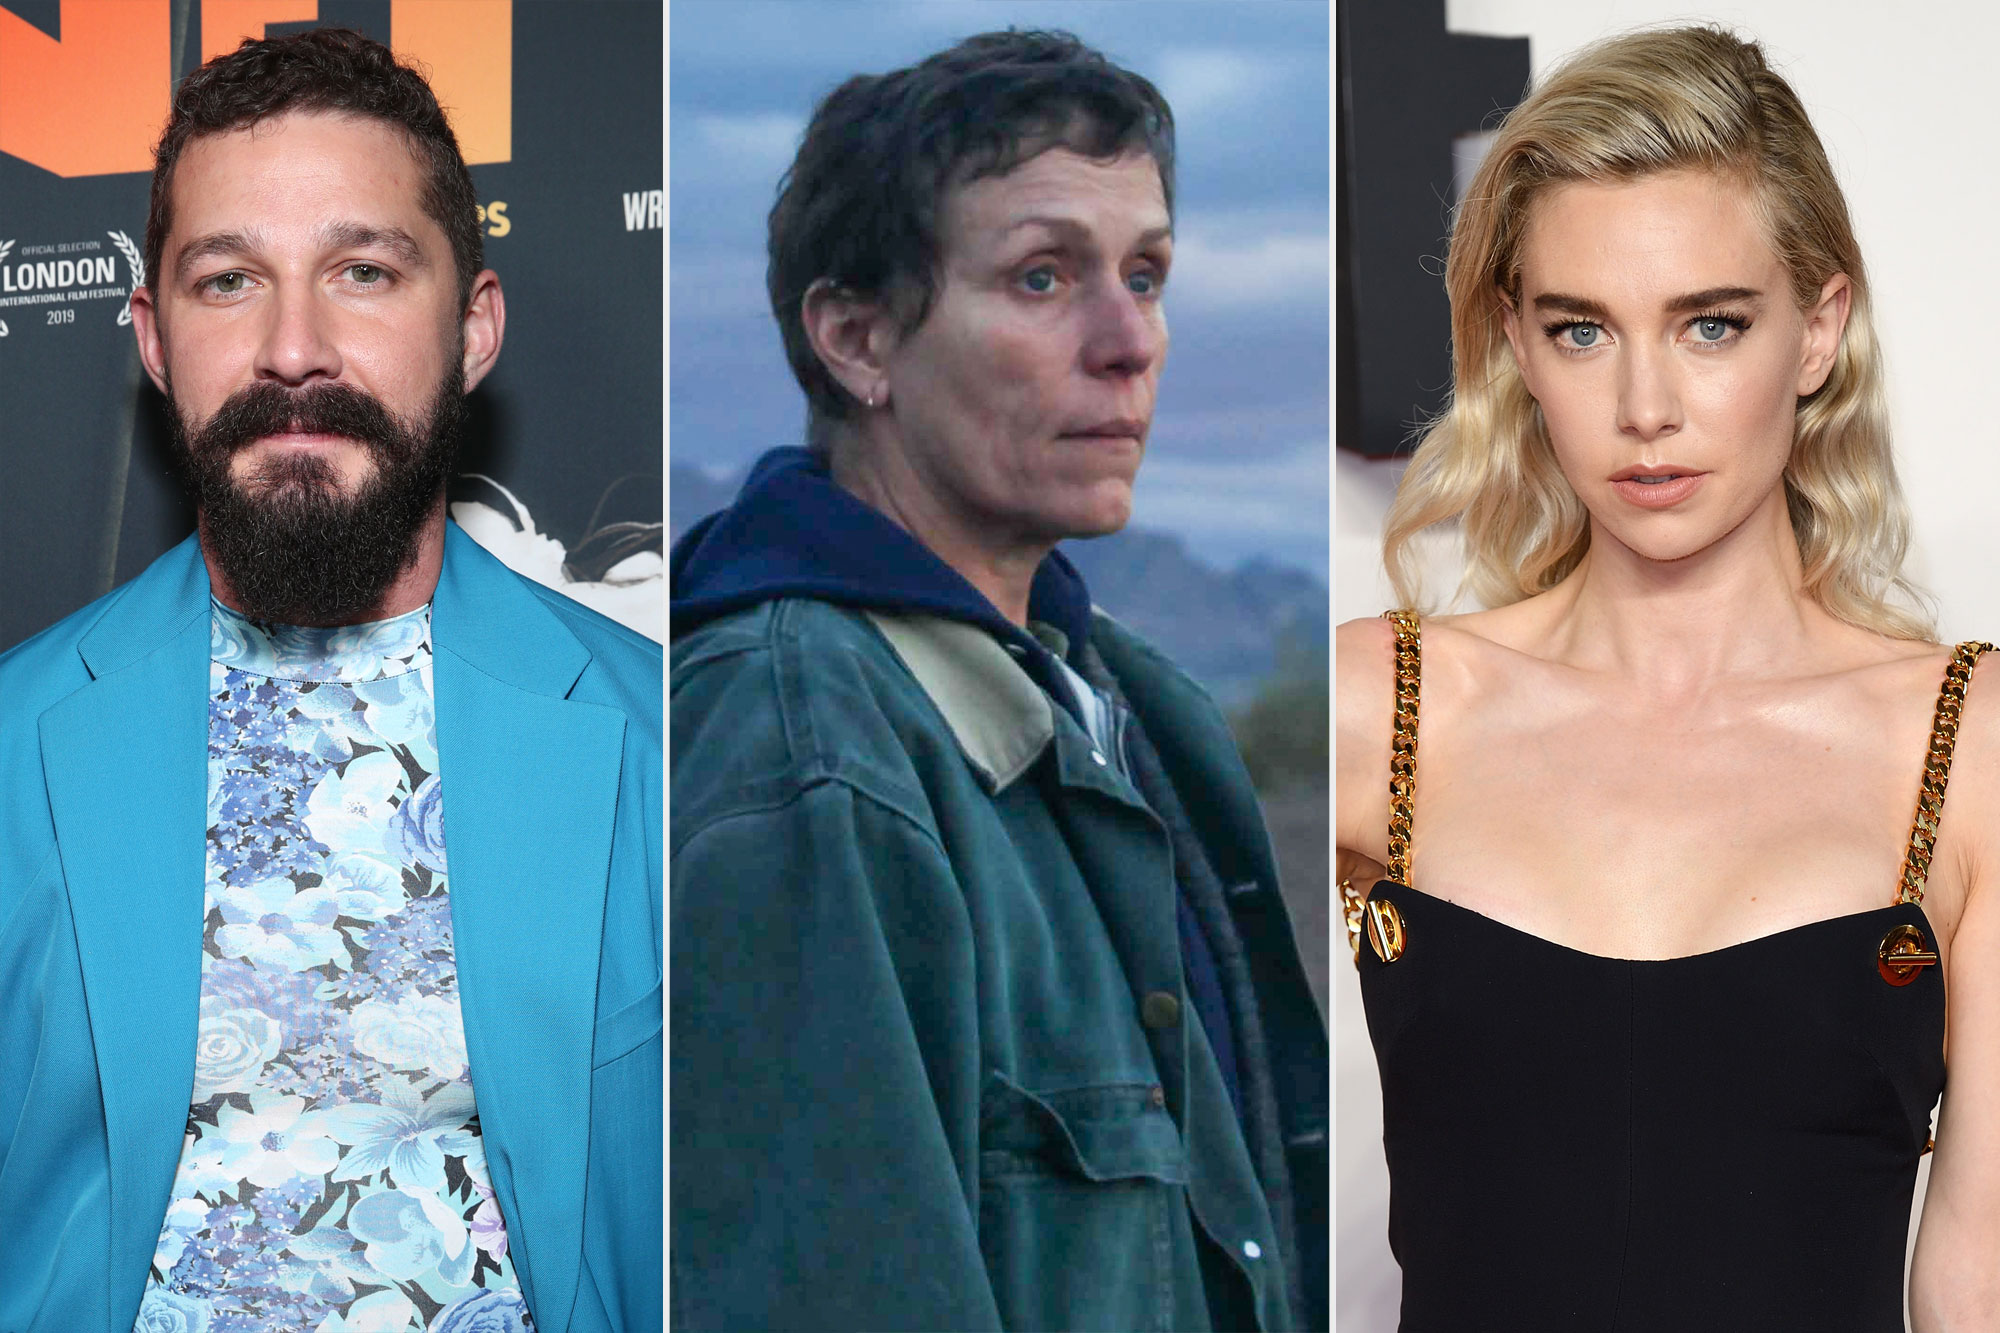 Shia LaBeouf / Frances McDormand in Nomadland / Vanessa Kirby